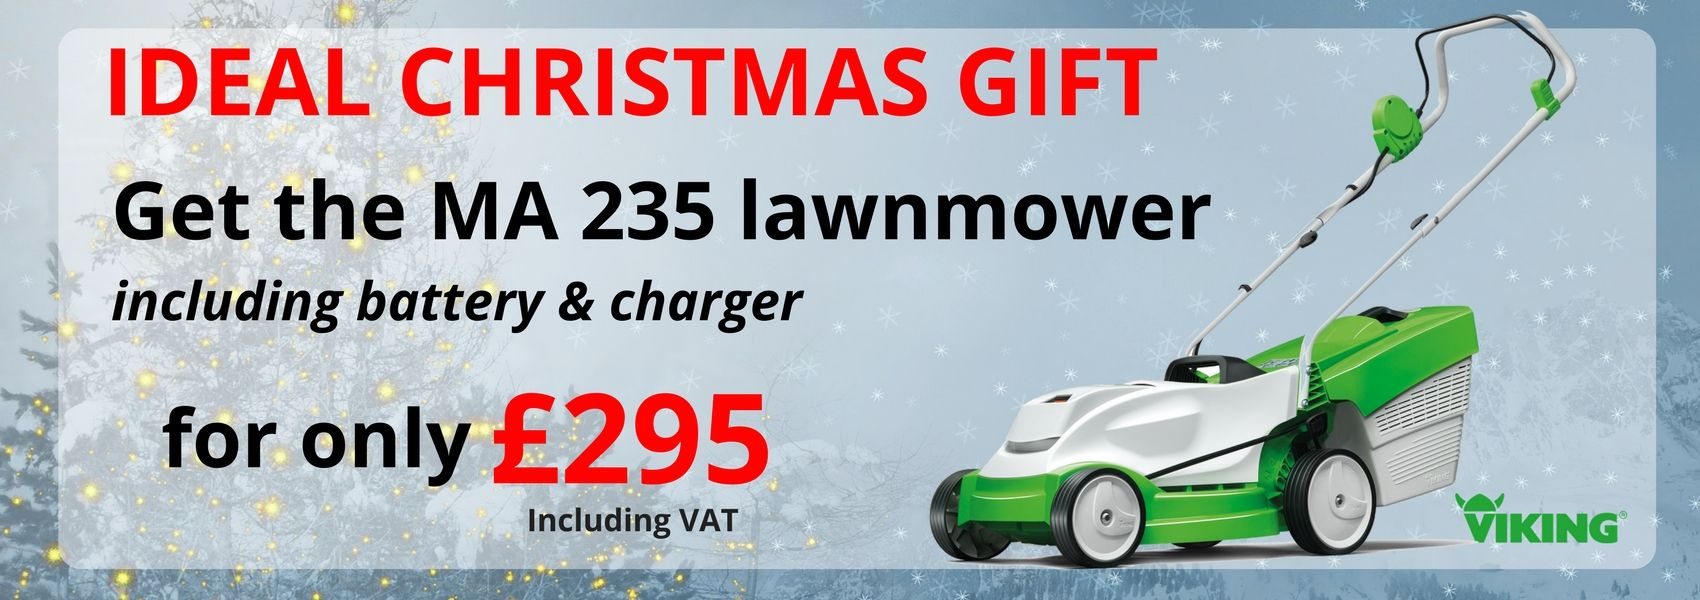 MA-235-Lawn-mowerThe-compact-battery-powered-lawn-mower-5